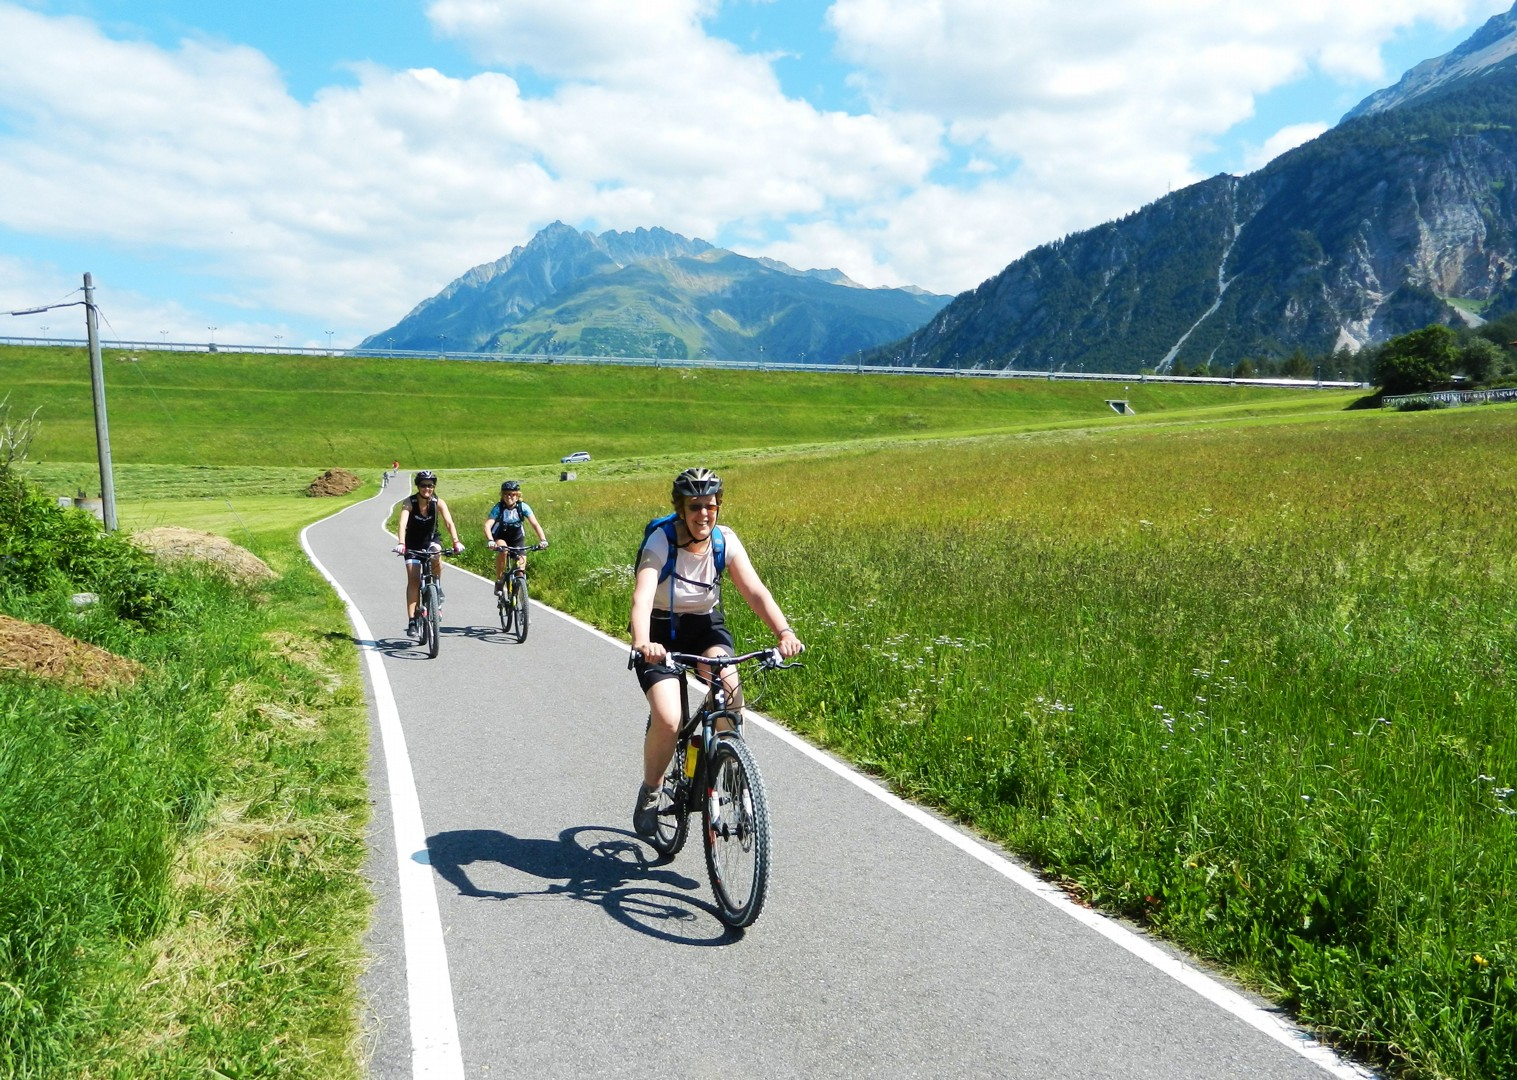 italian-self-guided-cycling-holiday.jpg - Italy - La Via Claudia - Self-Guided Leisure Cycling Holiday - Leisure Cycling